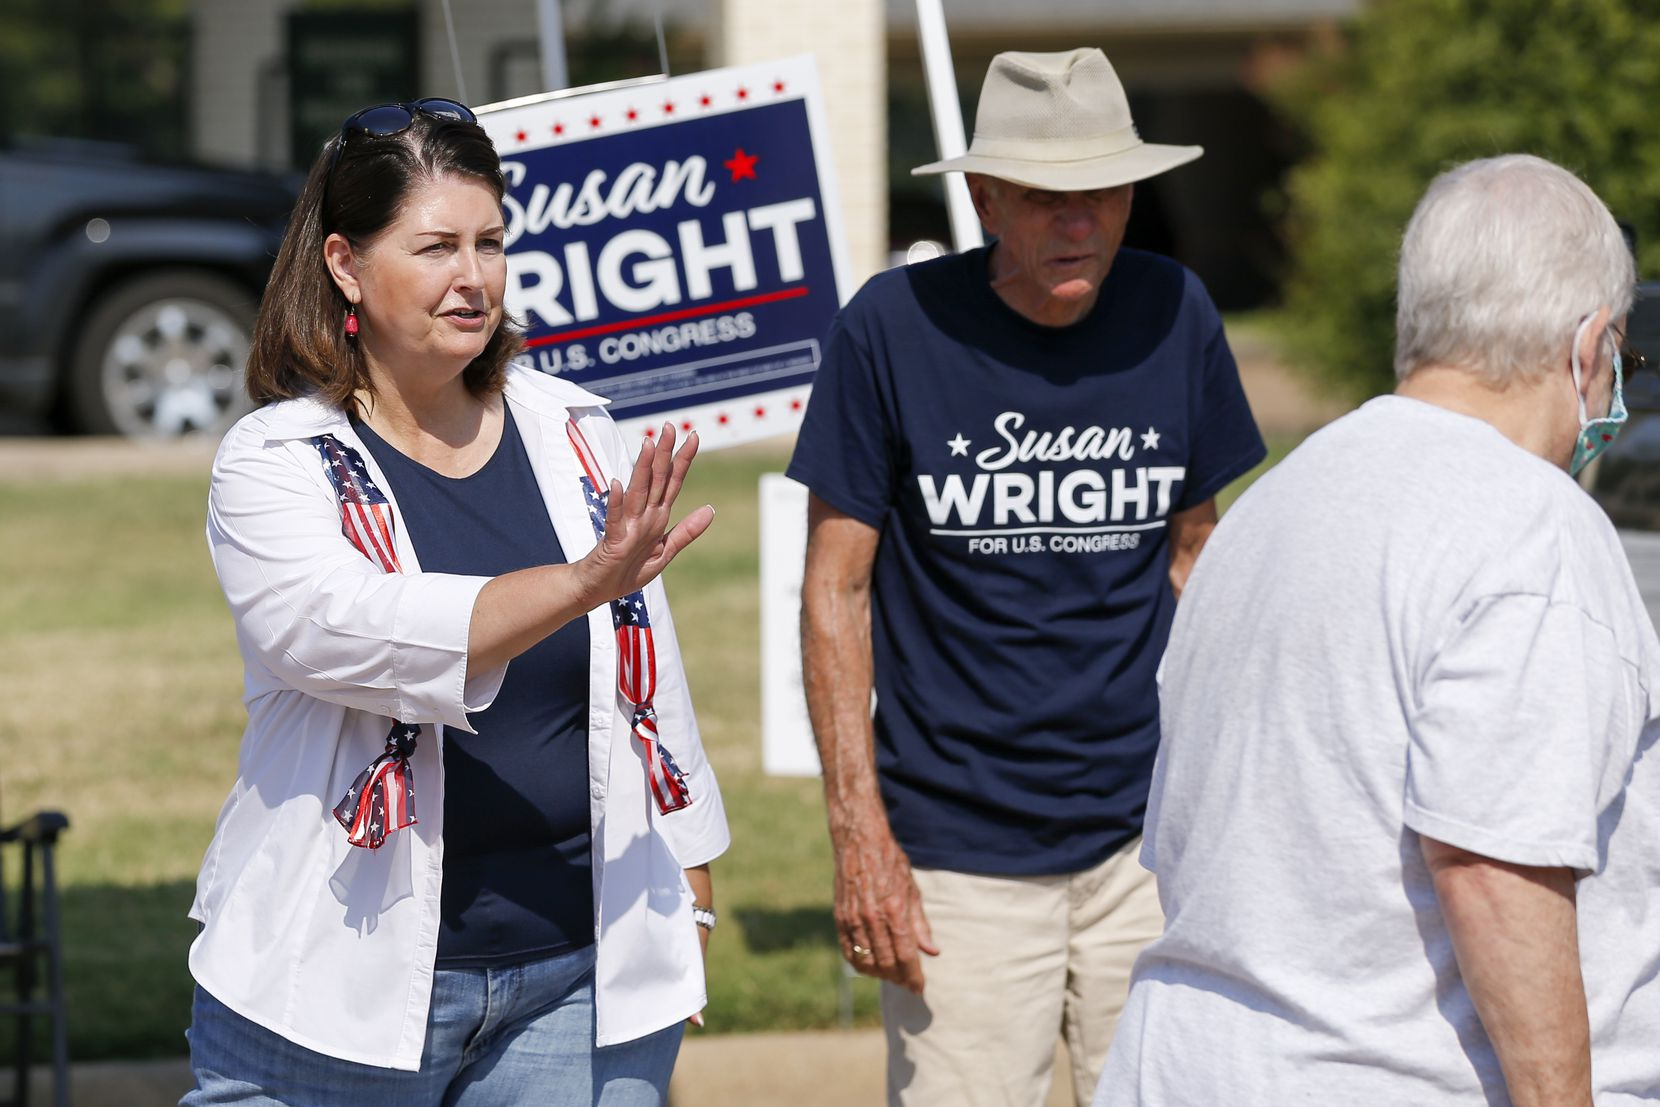 Susan Wright, Republican candidate for Texas' 6th Congressional District, greets voters outside a polling location during early voting for a special runoff election on Thursday, July 22, 2021, in Arlington. (Elias Valverde II/The Dallas Morning News)